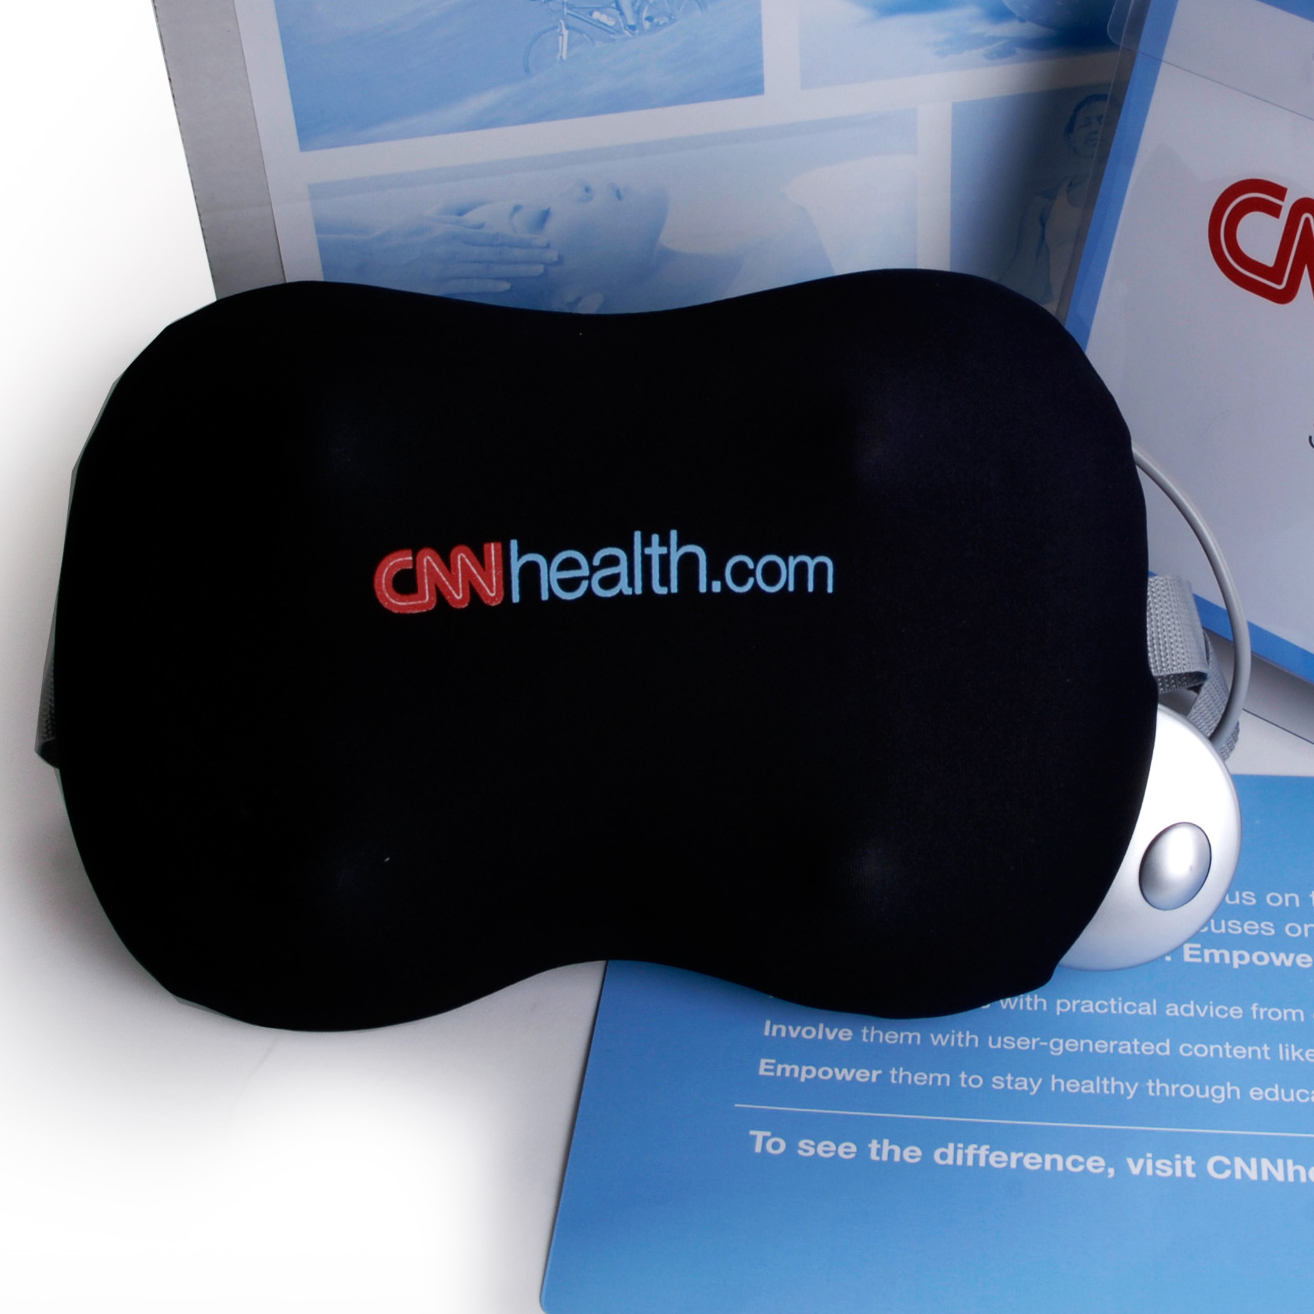 CNN_health_thumb